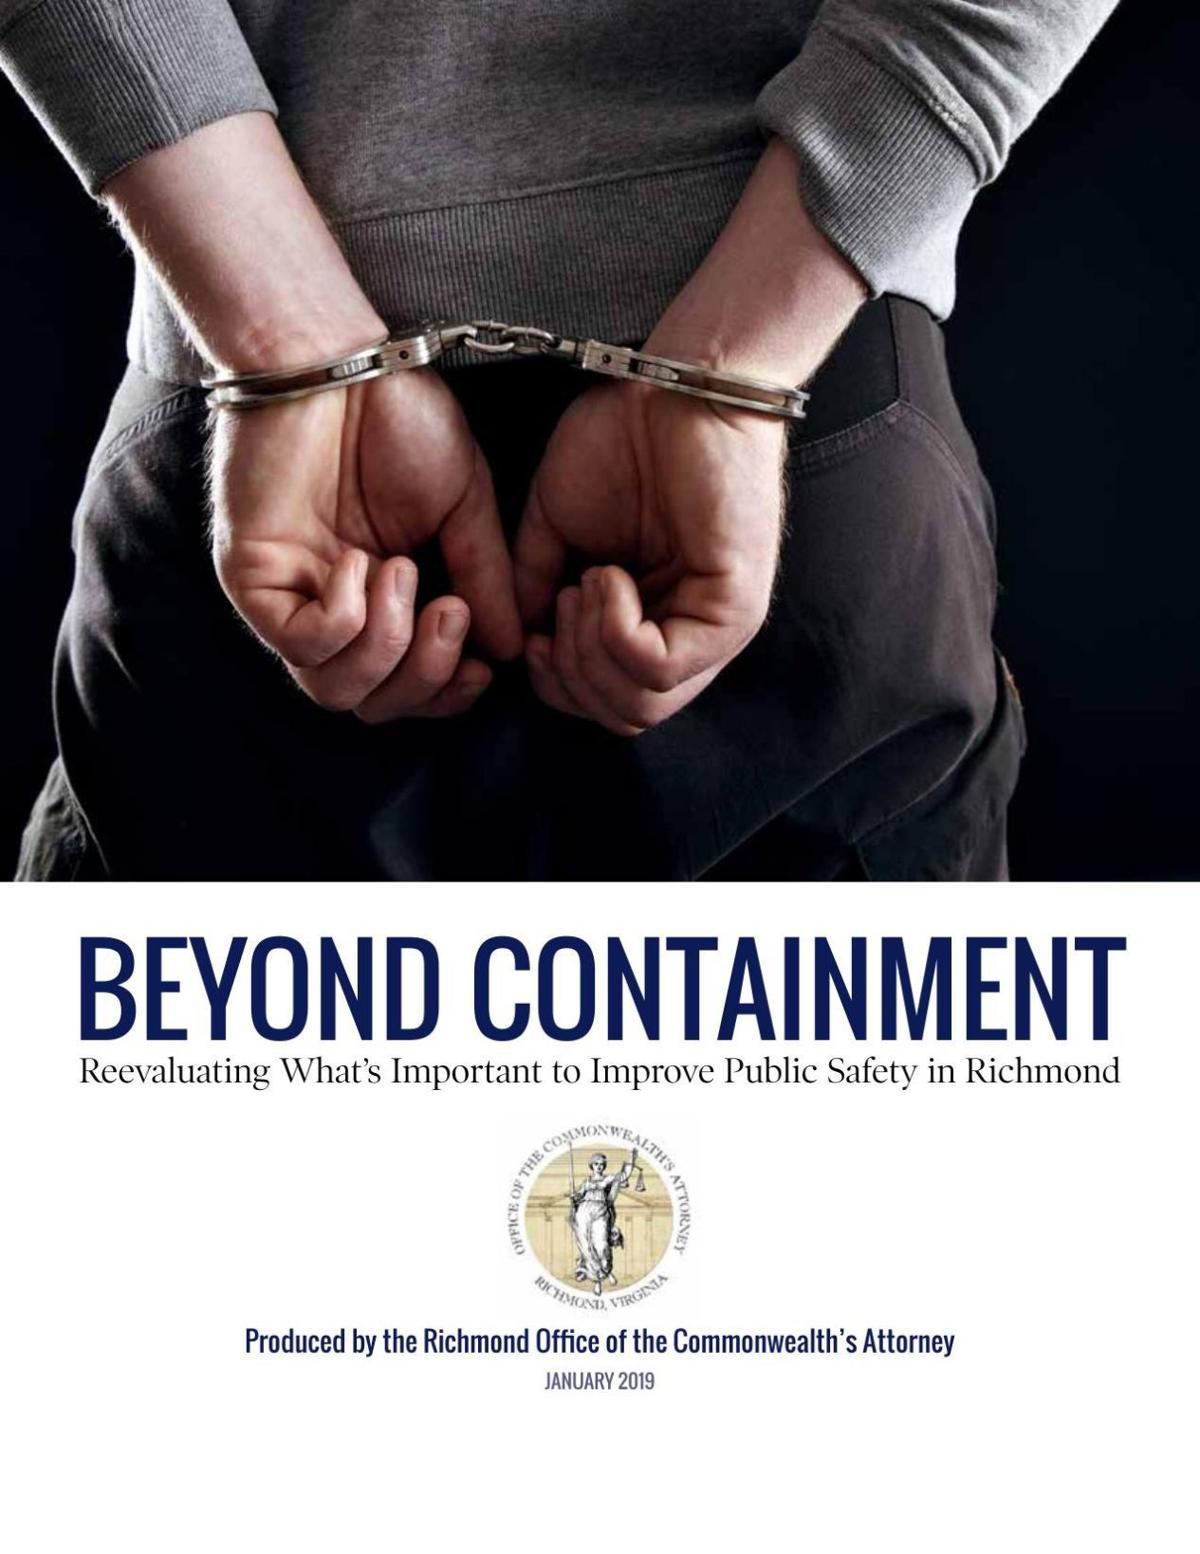 BEYOND CONTAINMENT: Reevaluating What's Important to Improve Public Safety in Richmond